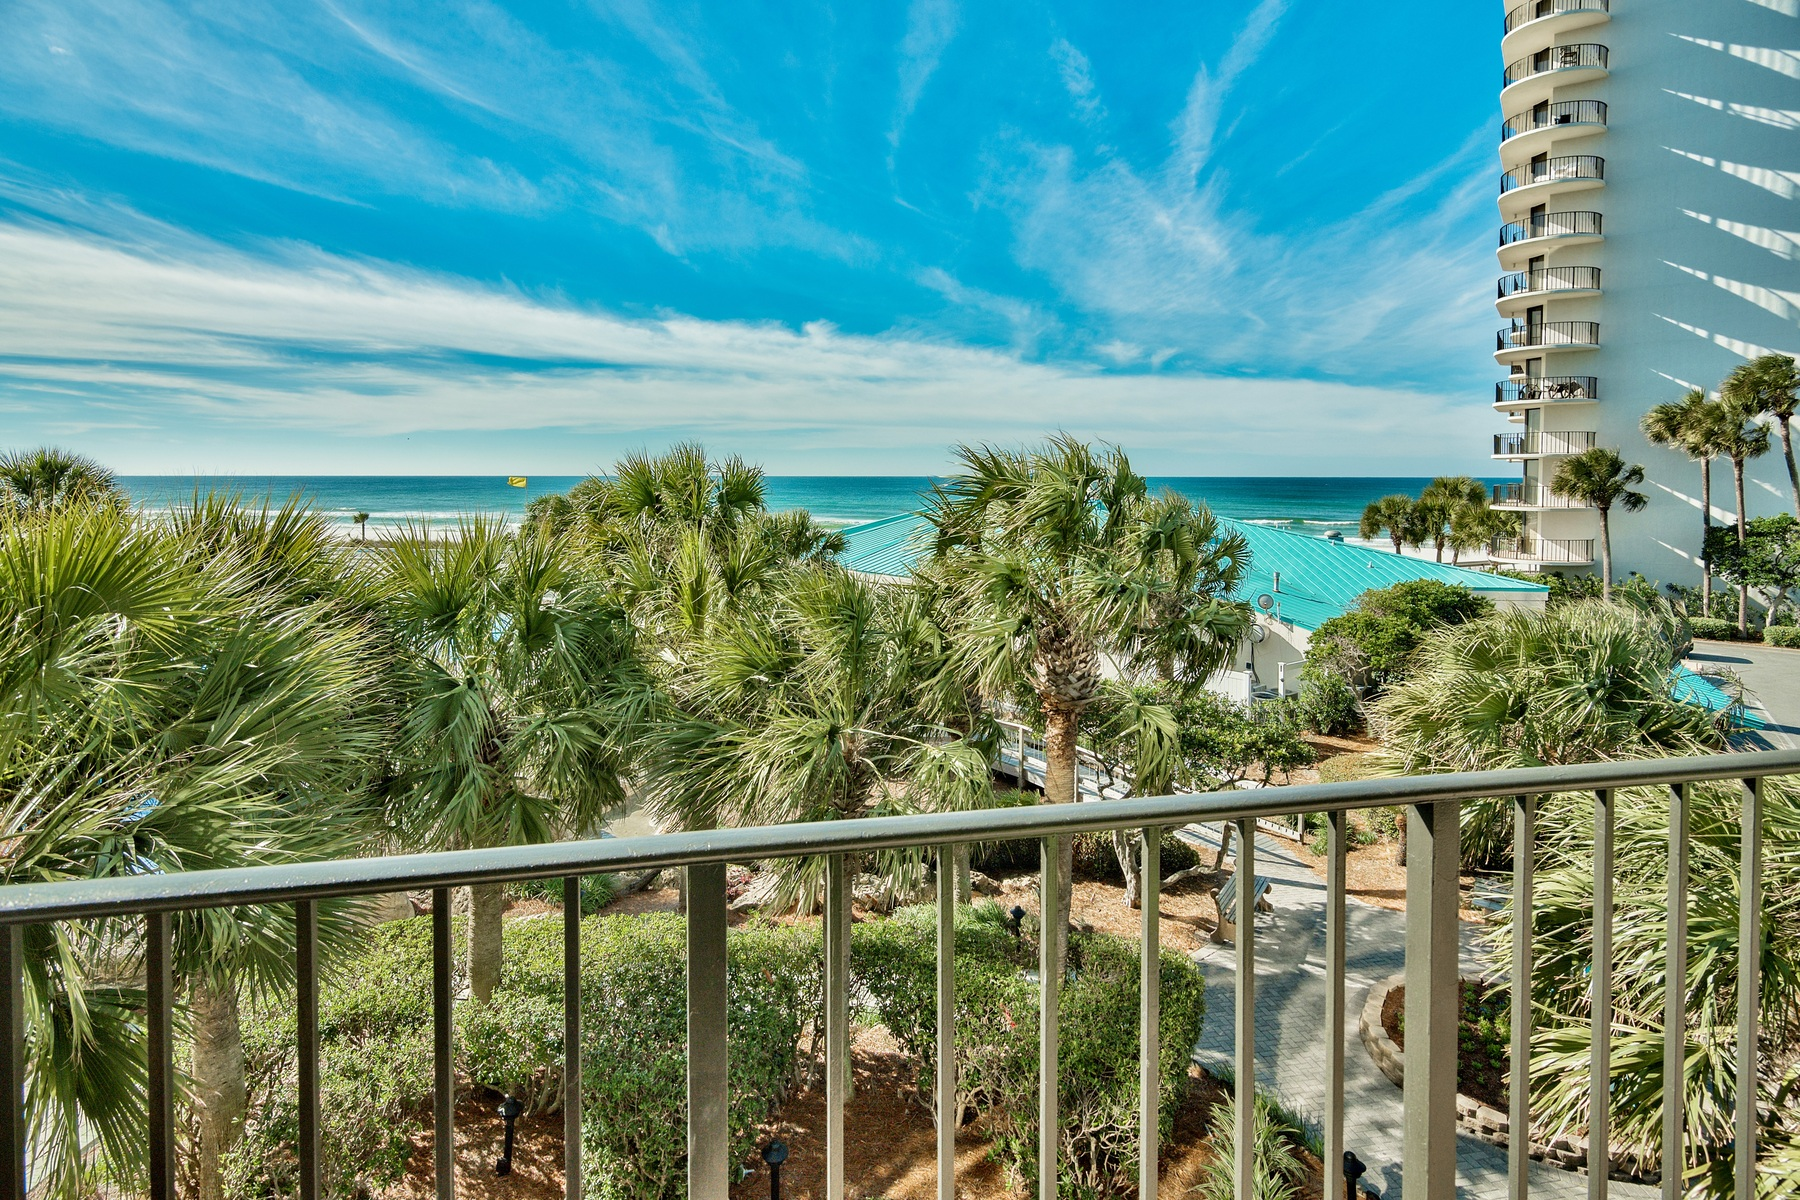 Eigentumswohnung für Verkauf beim UNIQUE WRAP AROUND BALCONY AND UNOBSTRUCTED GULF VIEWS 11483 Front Beach Road 212 Panama City Beach, Florida, 32407 Vereinigte Staaten